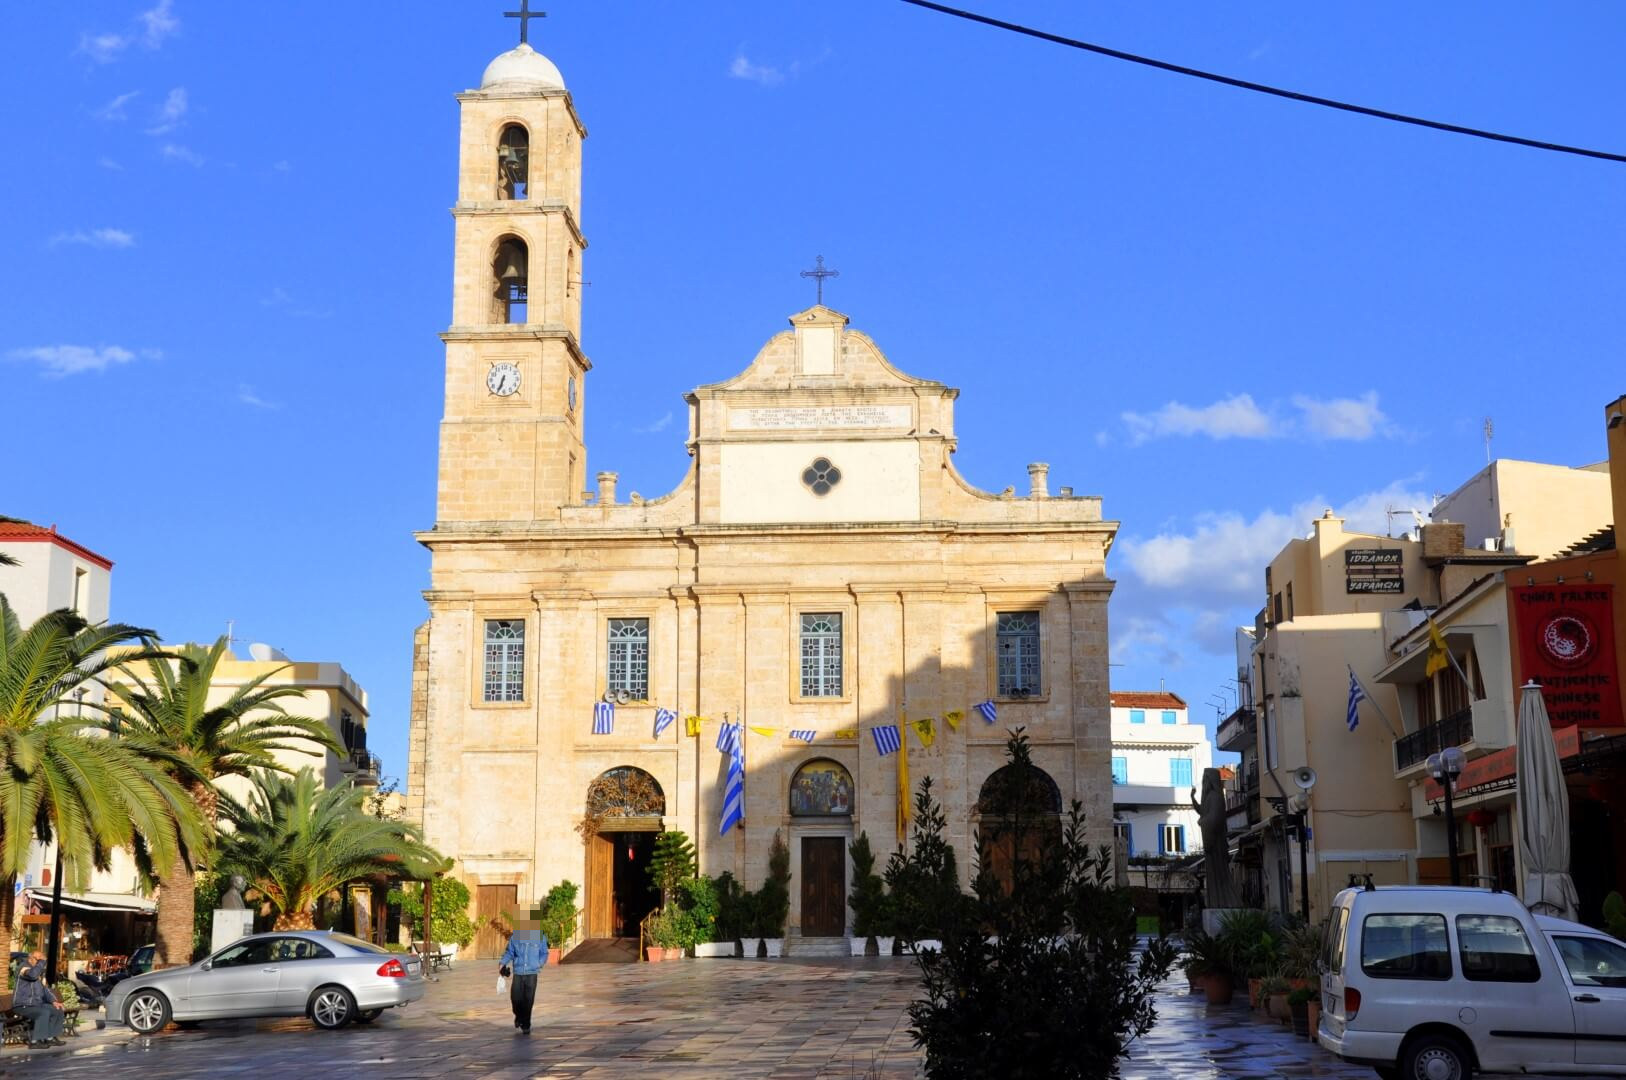 The Trimartiri Cathedral